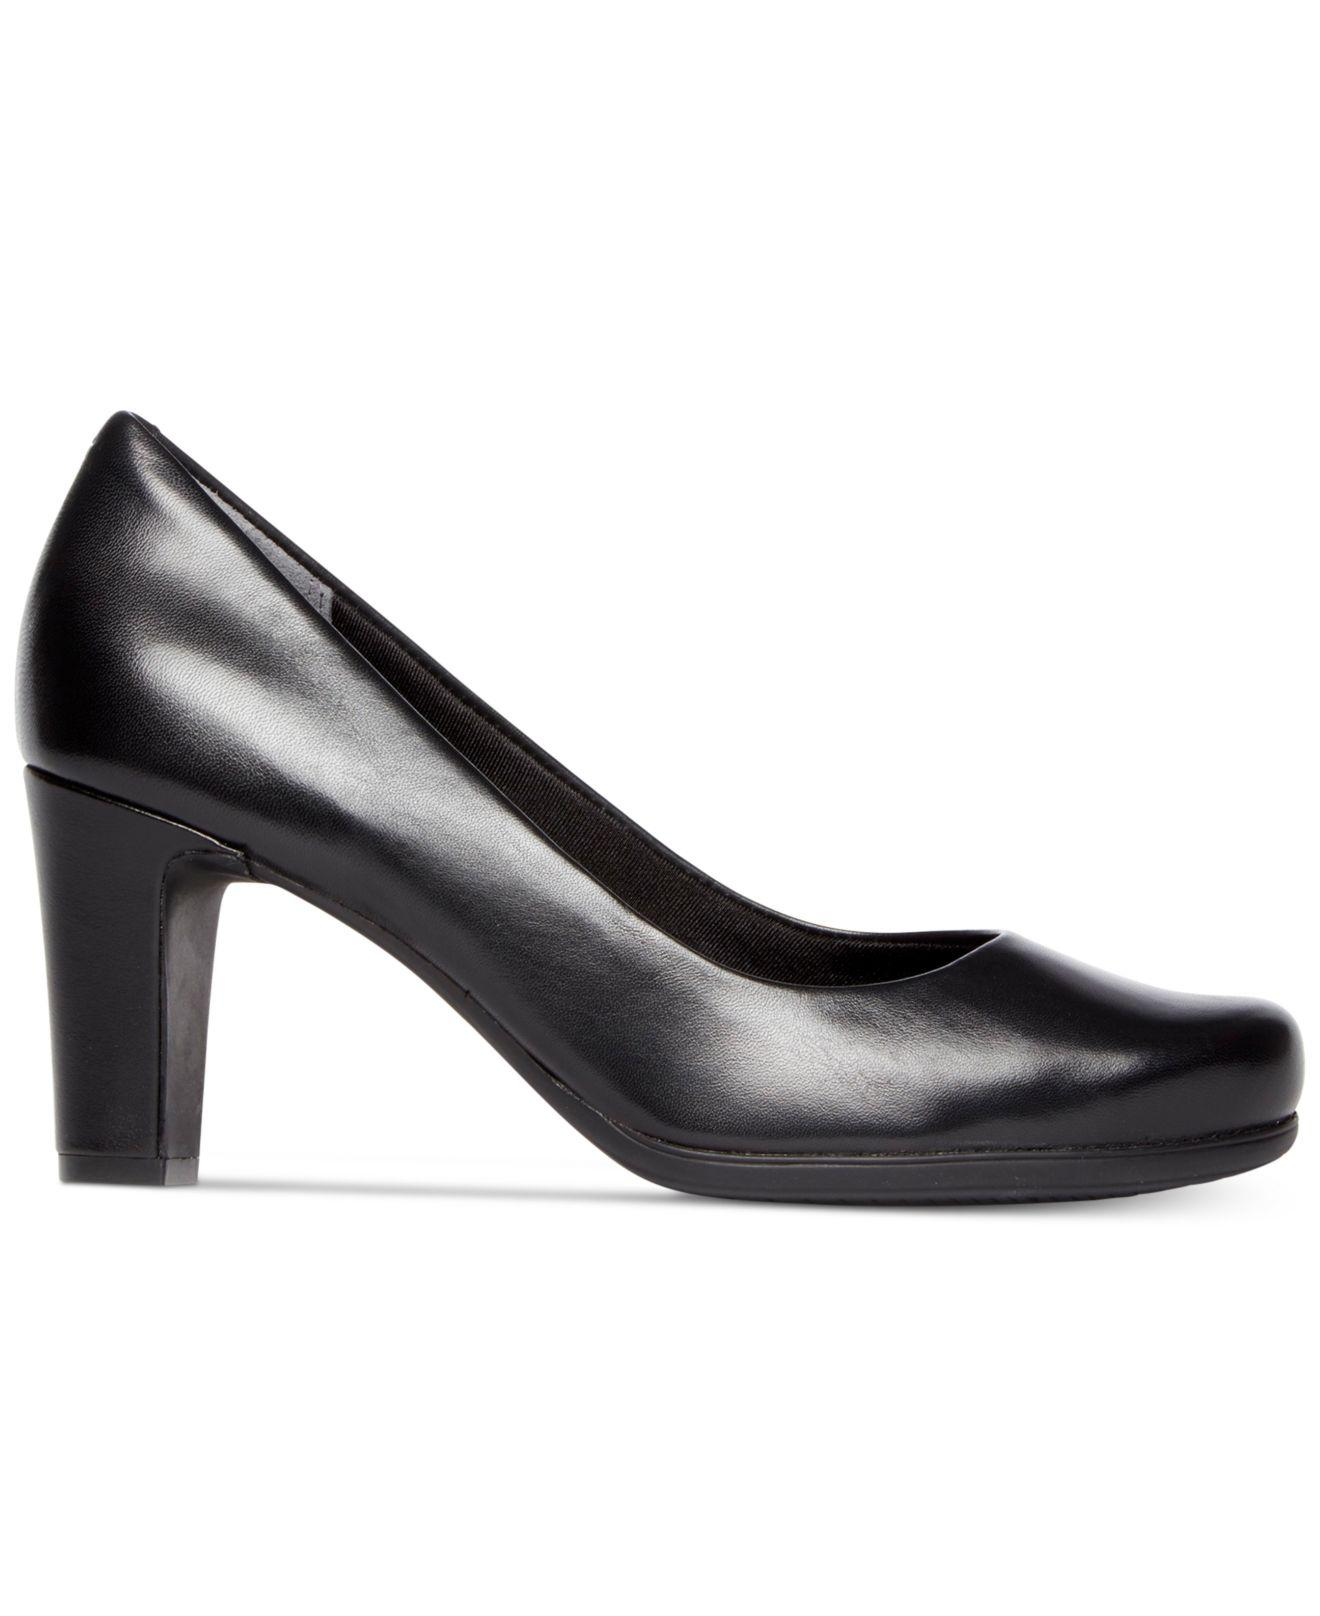 339b57907adf Lyst - Rockport Total Motion Round-toe Pumps in Black - Save 46%